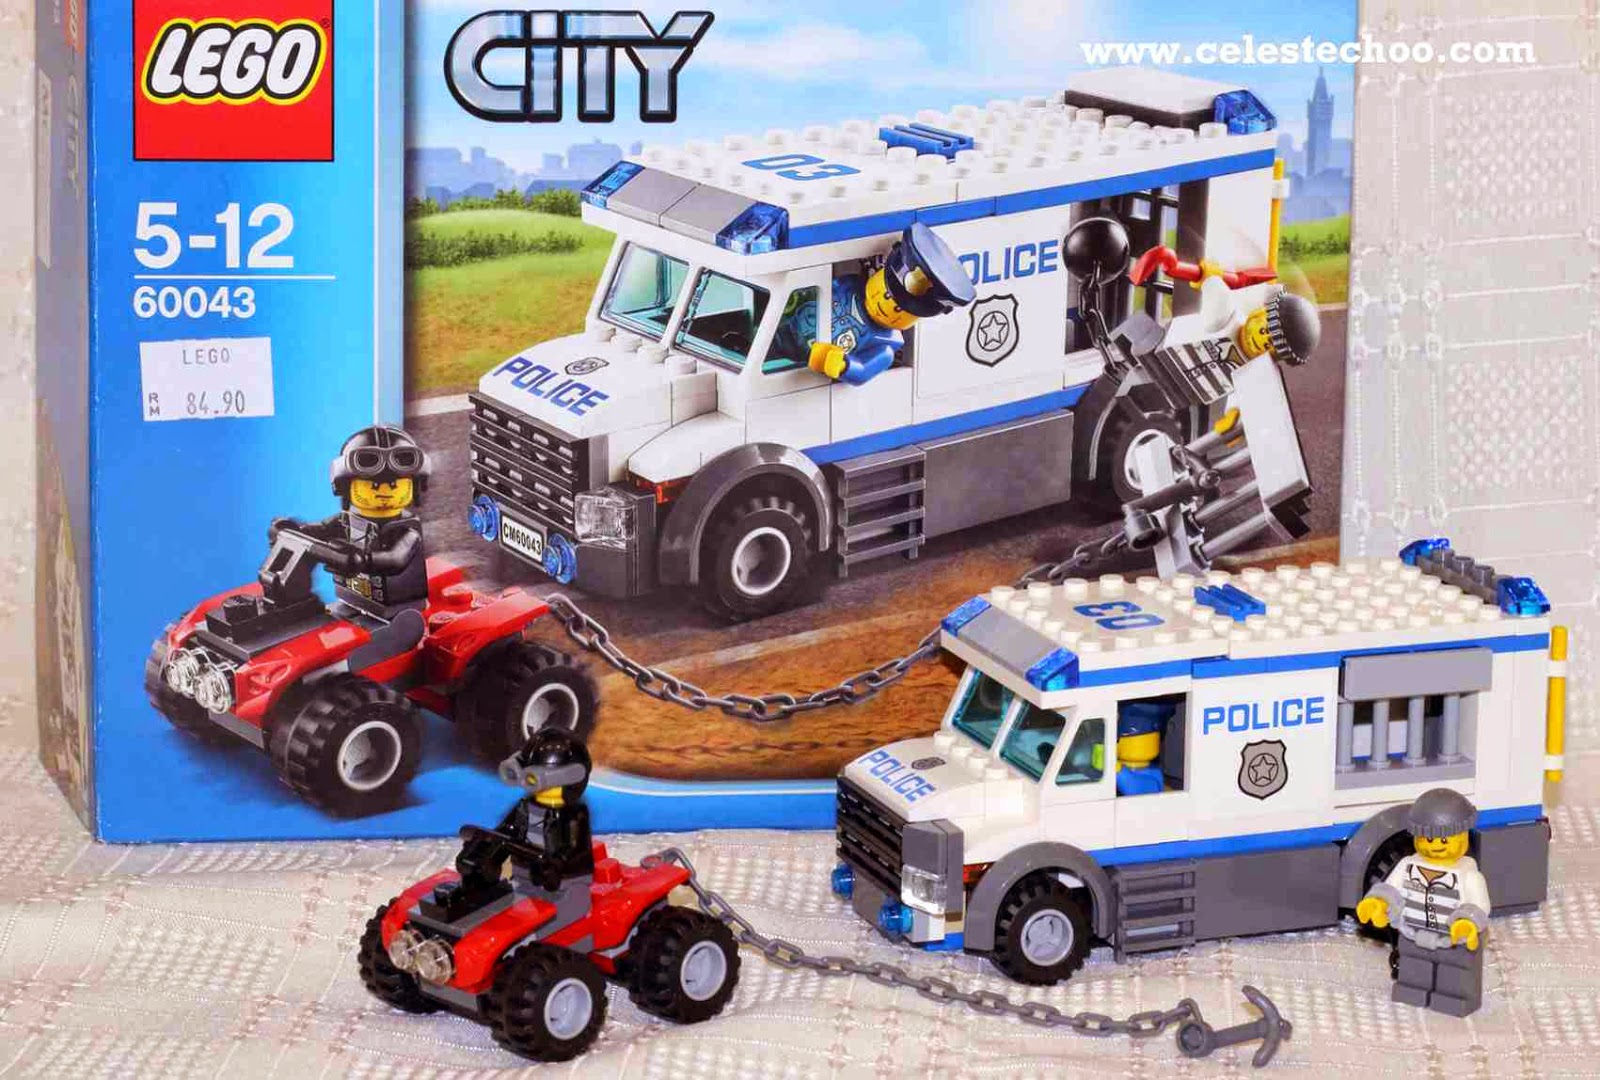 lego-city-police-truck-toy-and-red-car